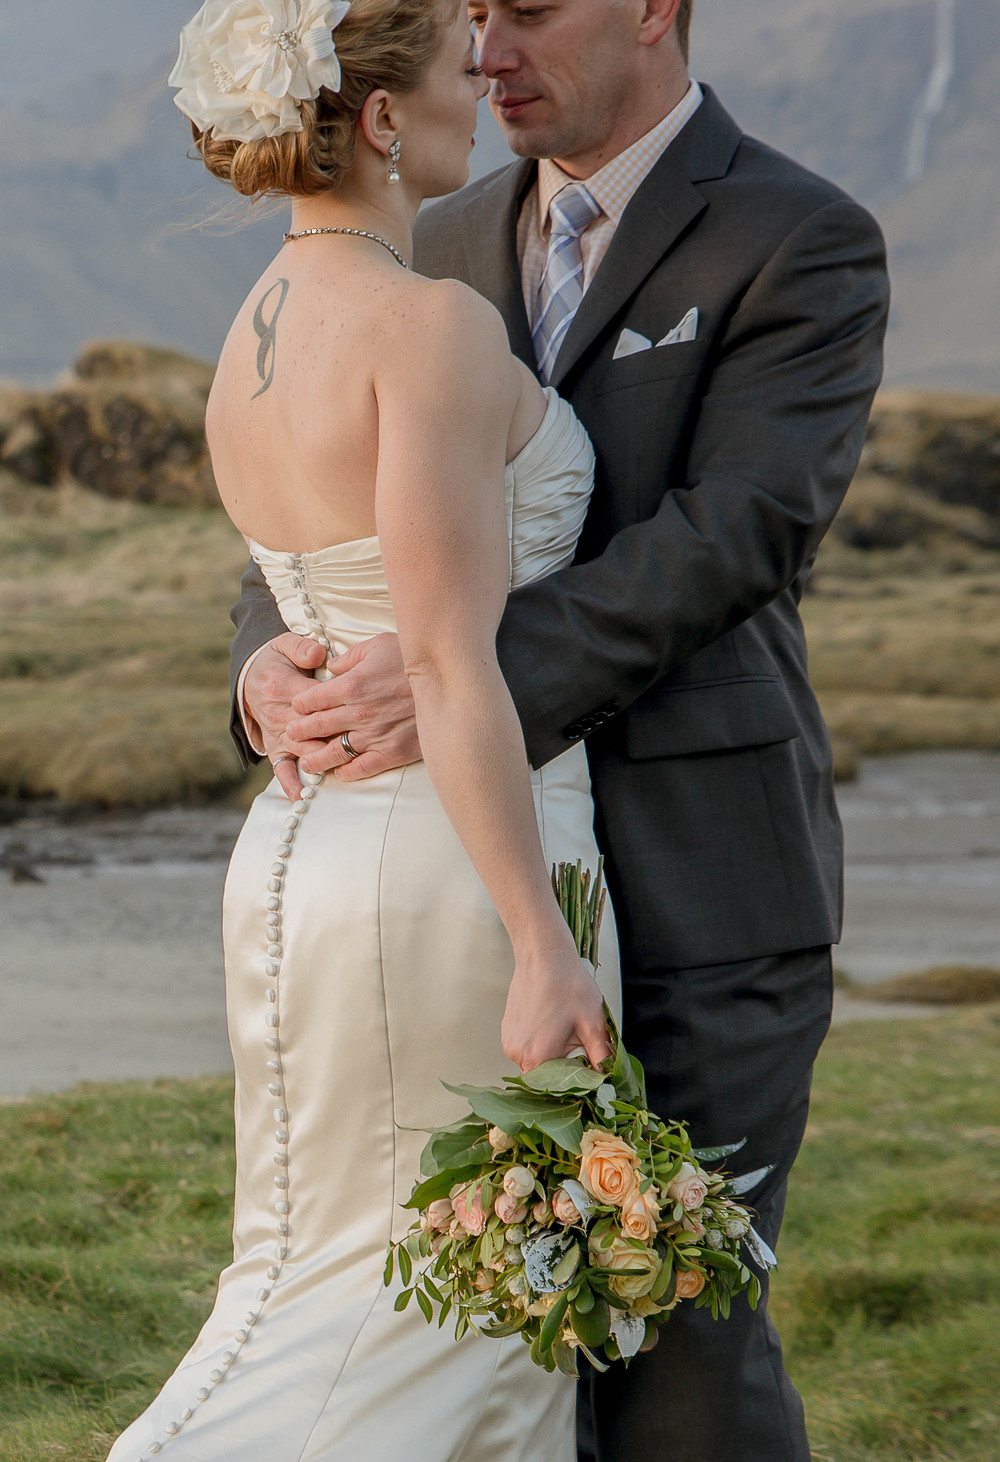 Iceland-Wedding-Photographer-Photos-by-Miss-Ann-41.jpg